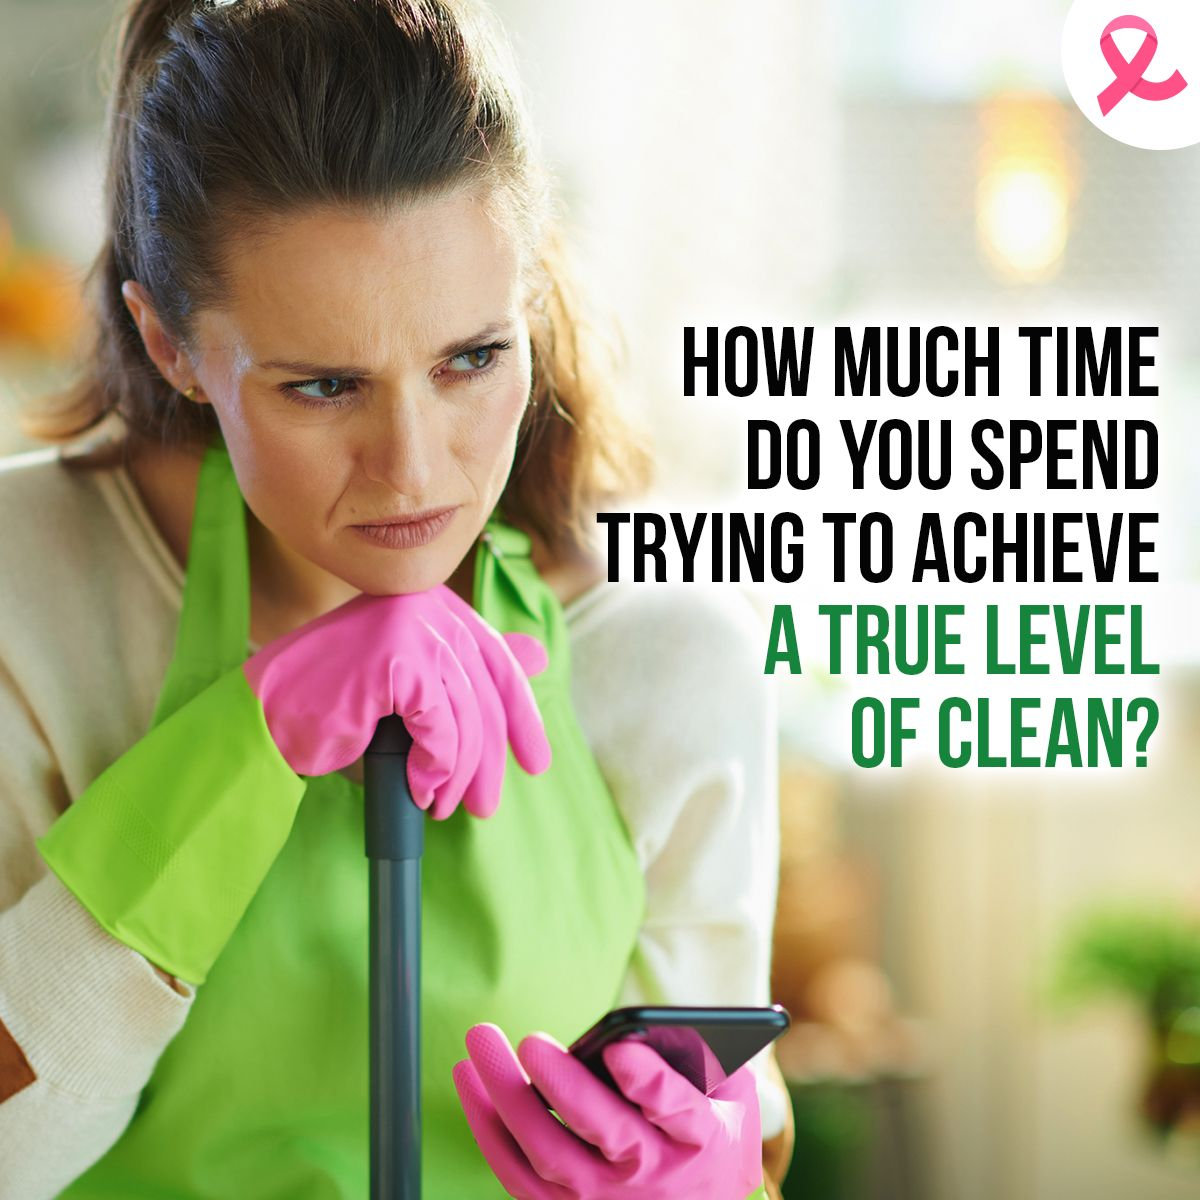 Is Your Cleaning Routine Taking Longer Than Expected?